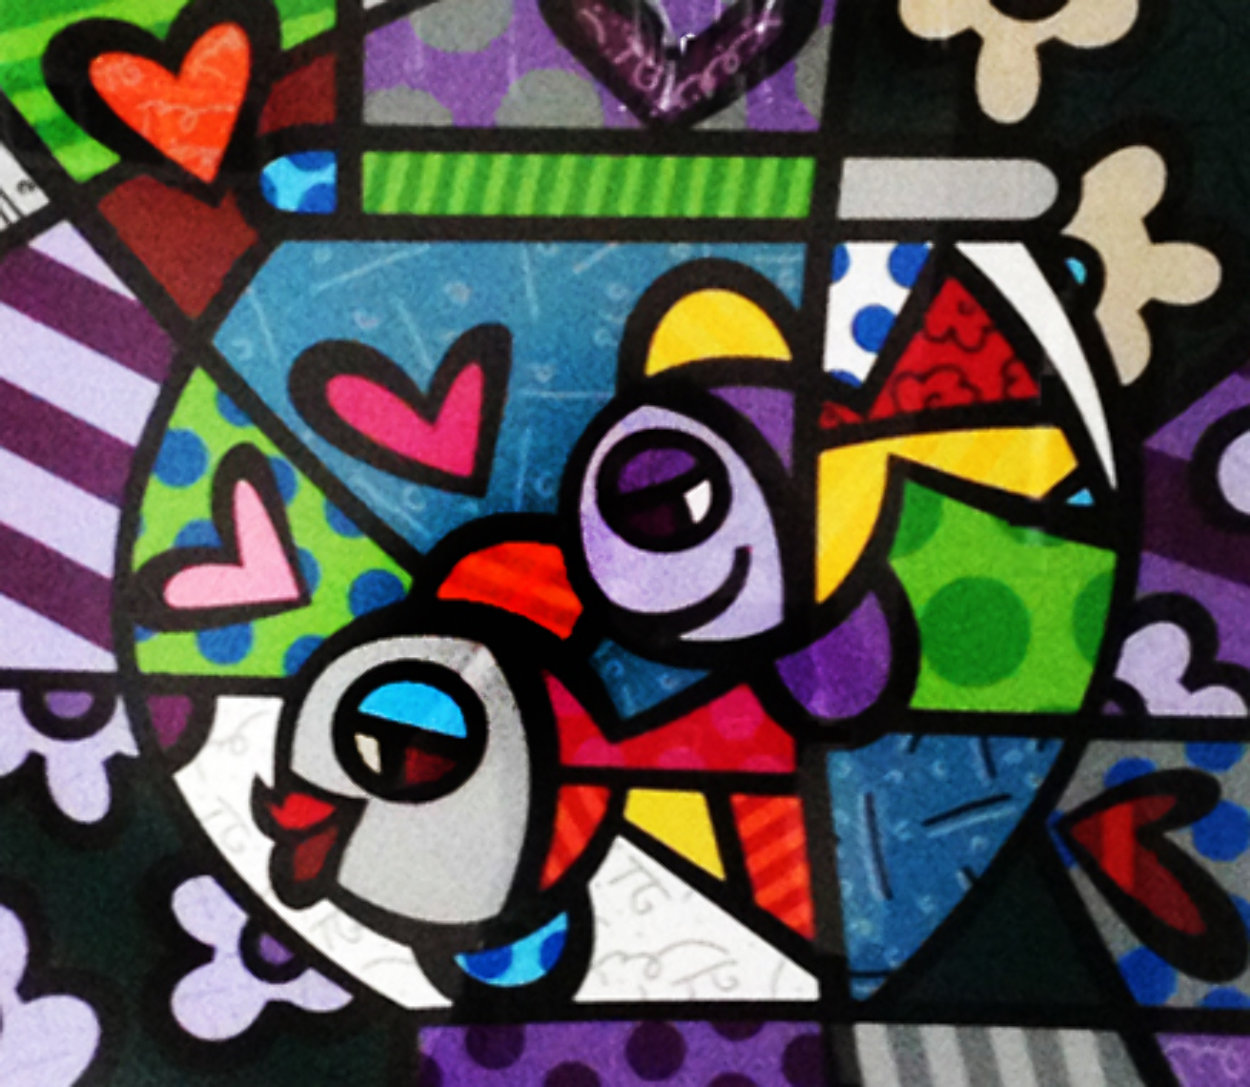 Untitled Lithograph Limited Edition Print by Romero Britto